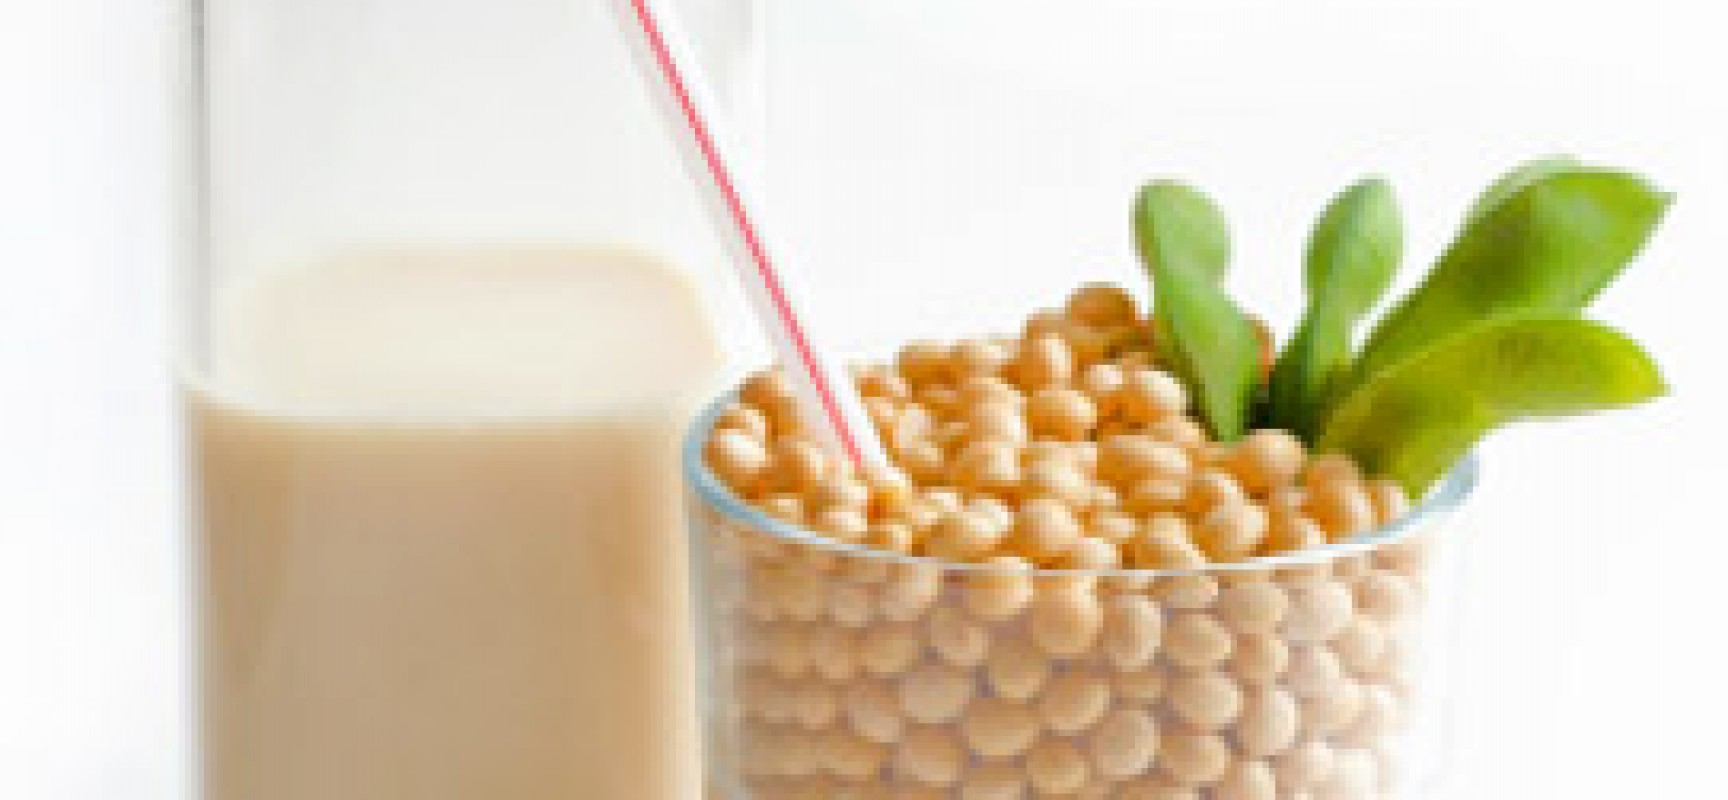 Wonderful Soy milk!